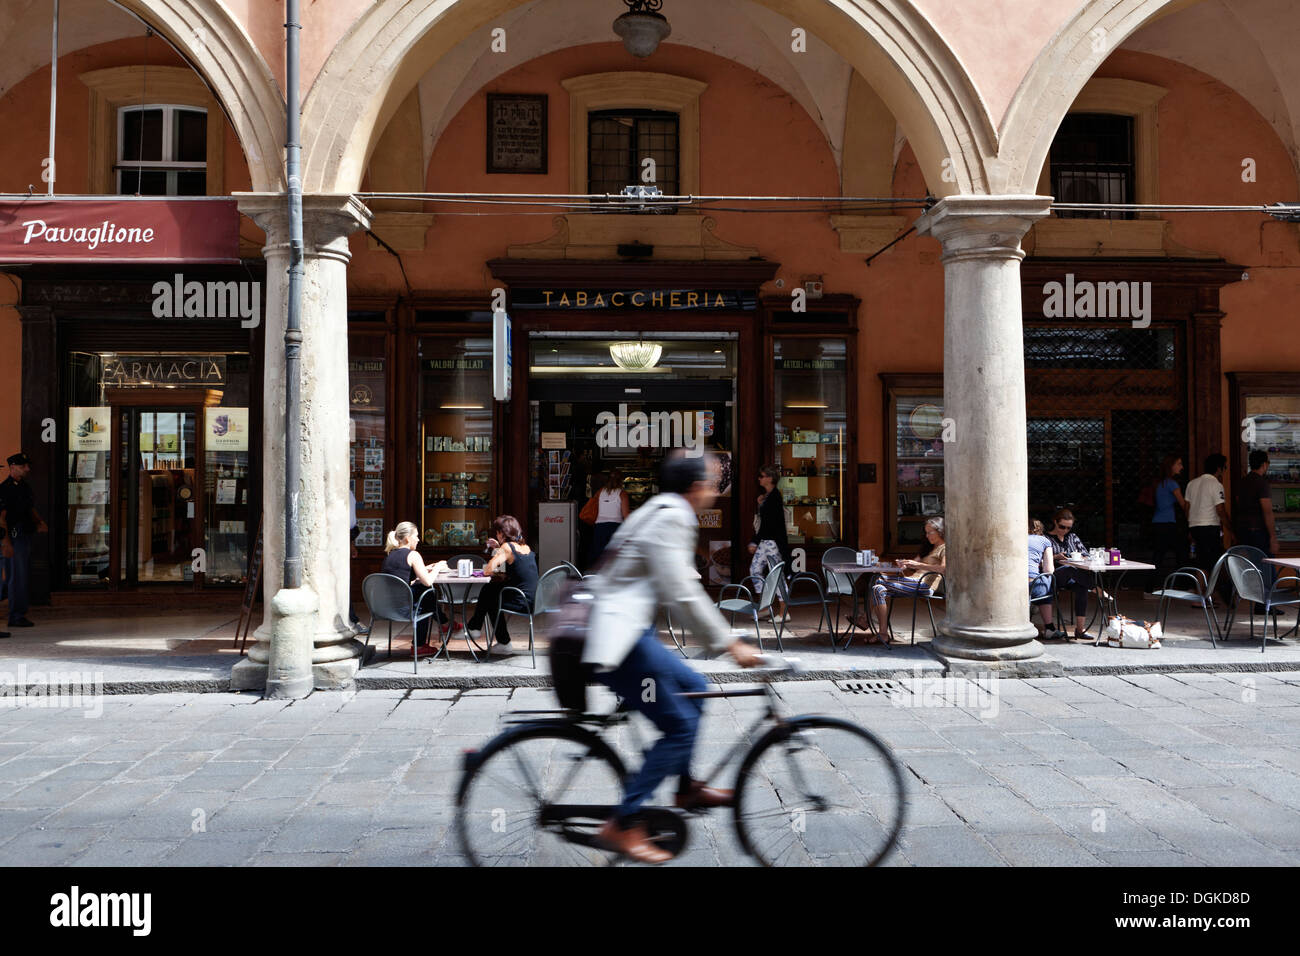 A cyclist passes a tabaccheria in the historical centre of Bologna. Stock Photo